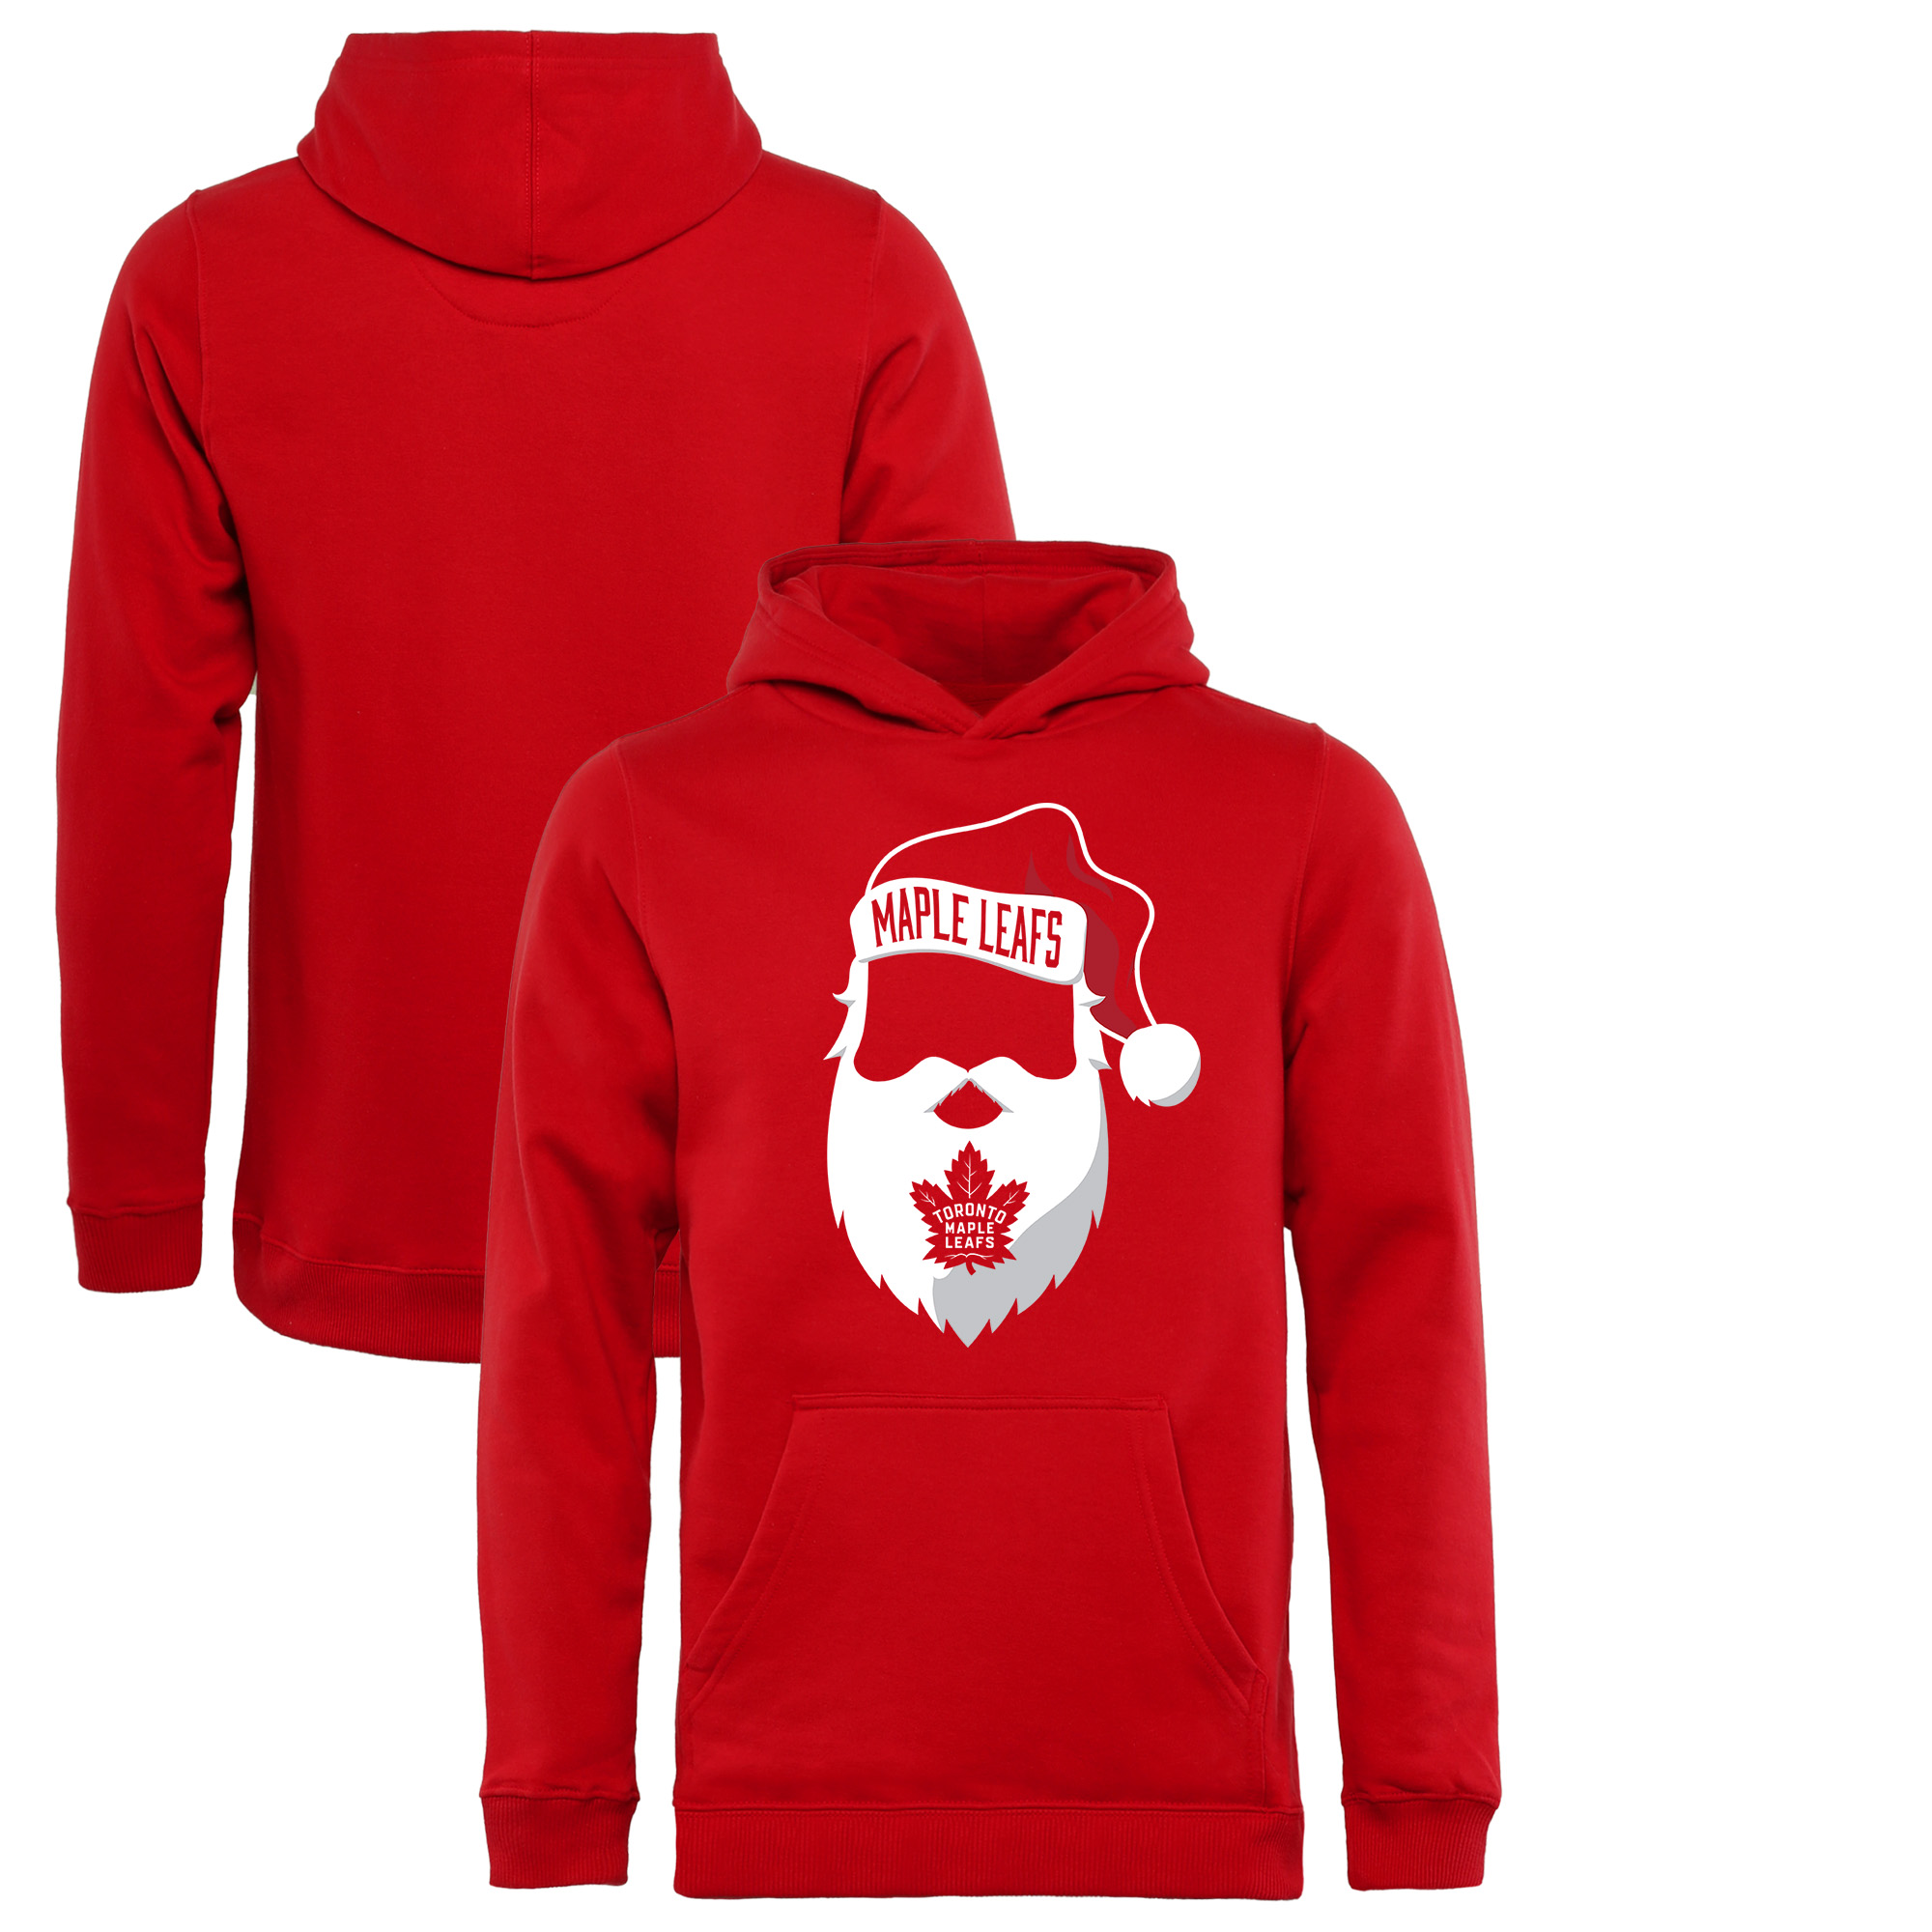 Toronto Maple Leafs Fanatics Branded Youth Jolly Pullover Hoodie - Red